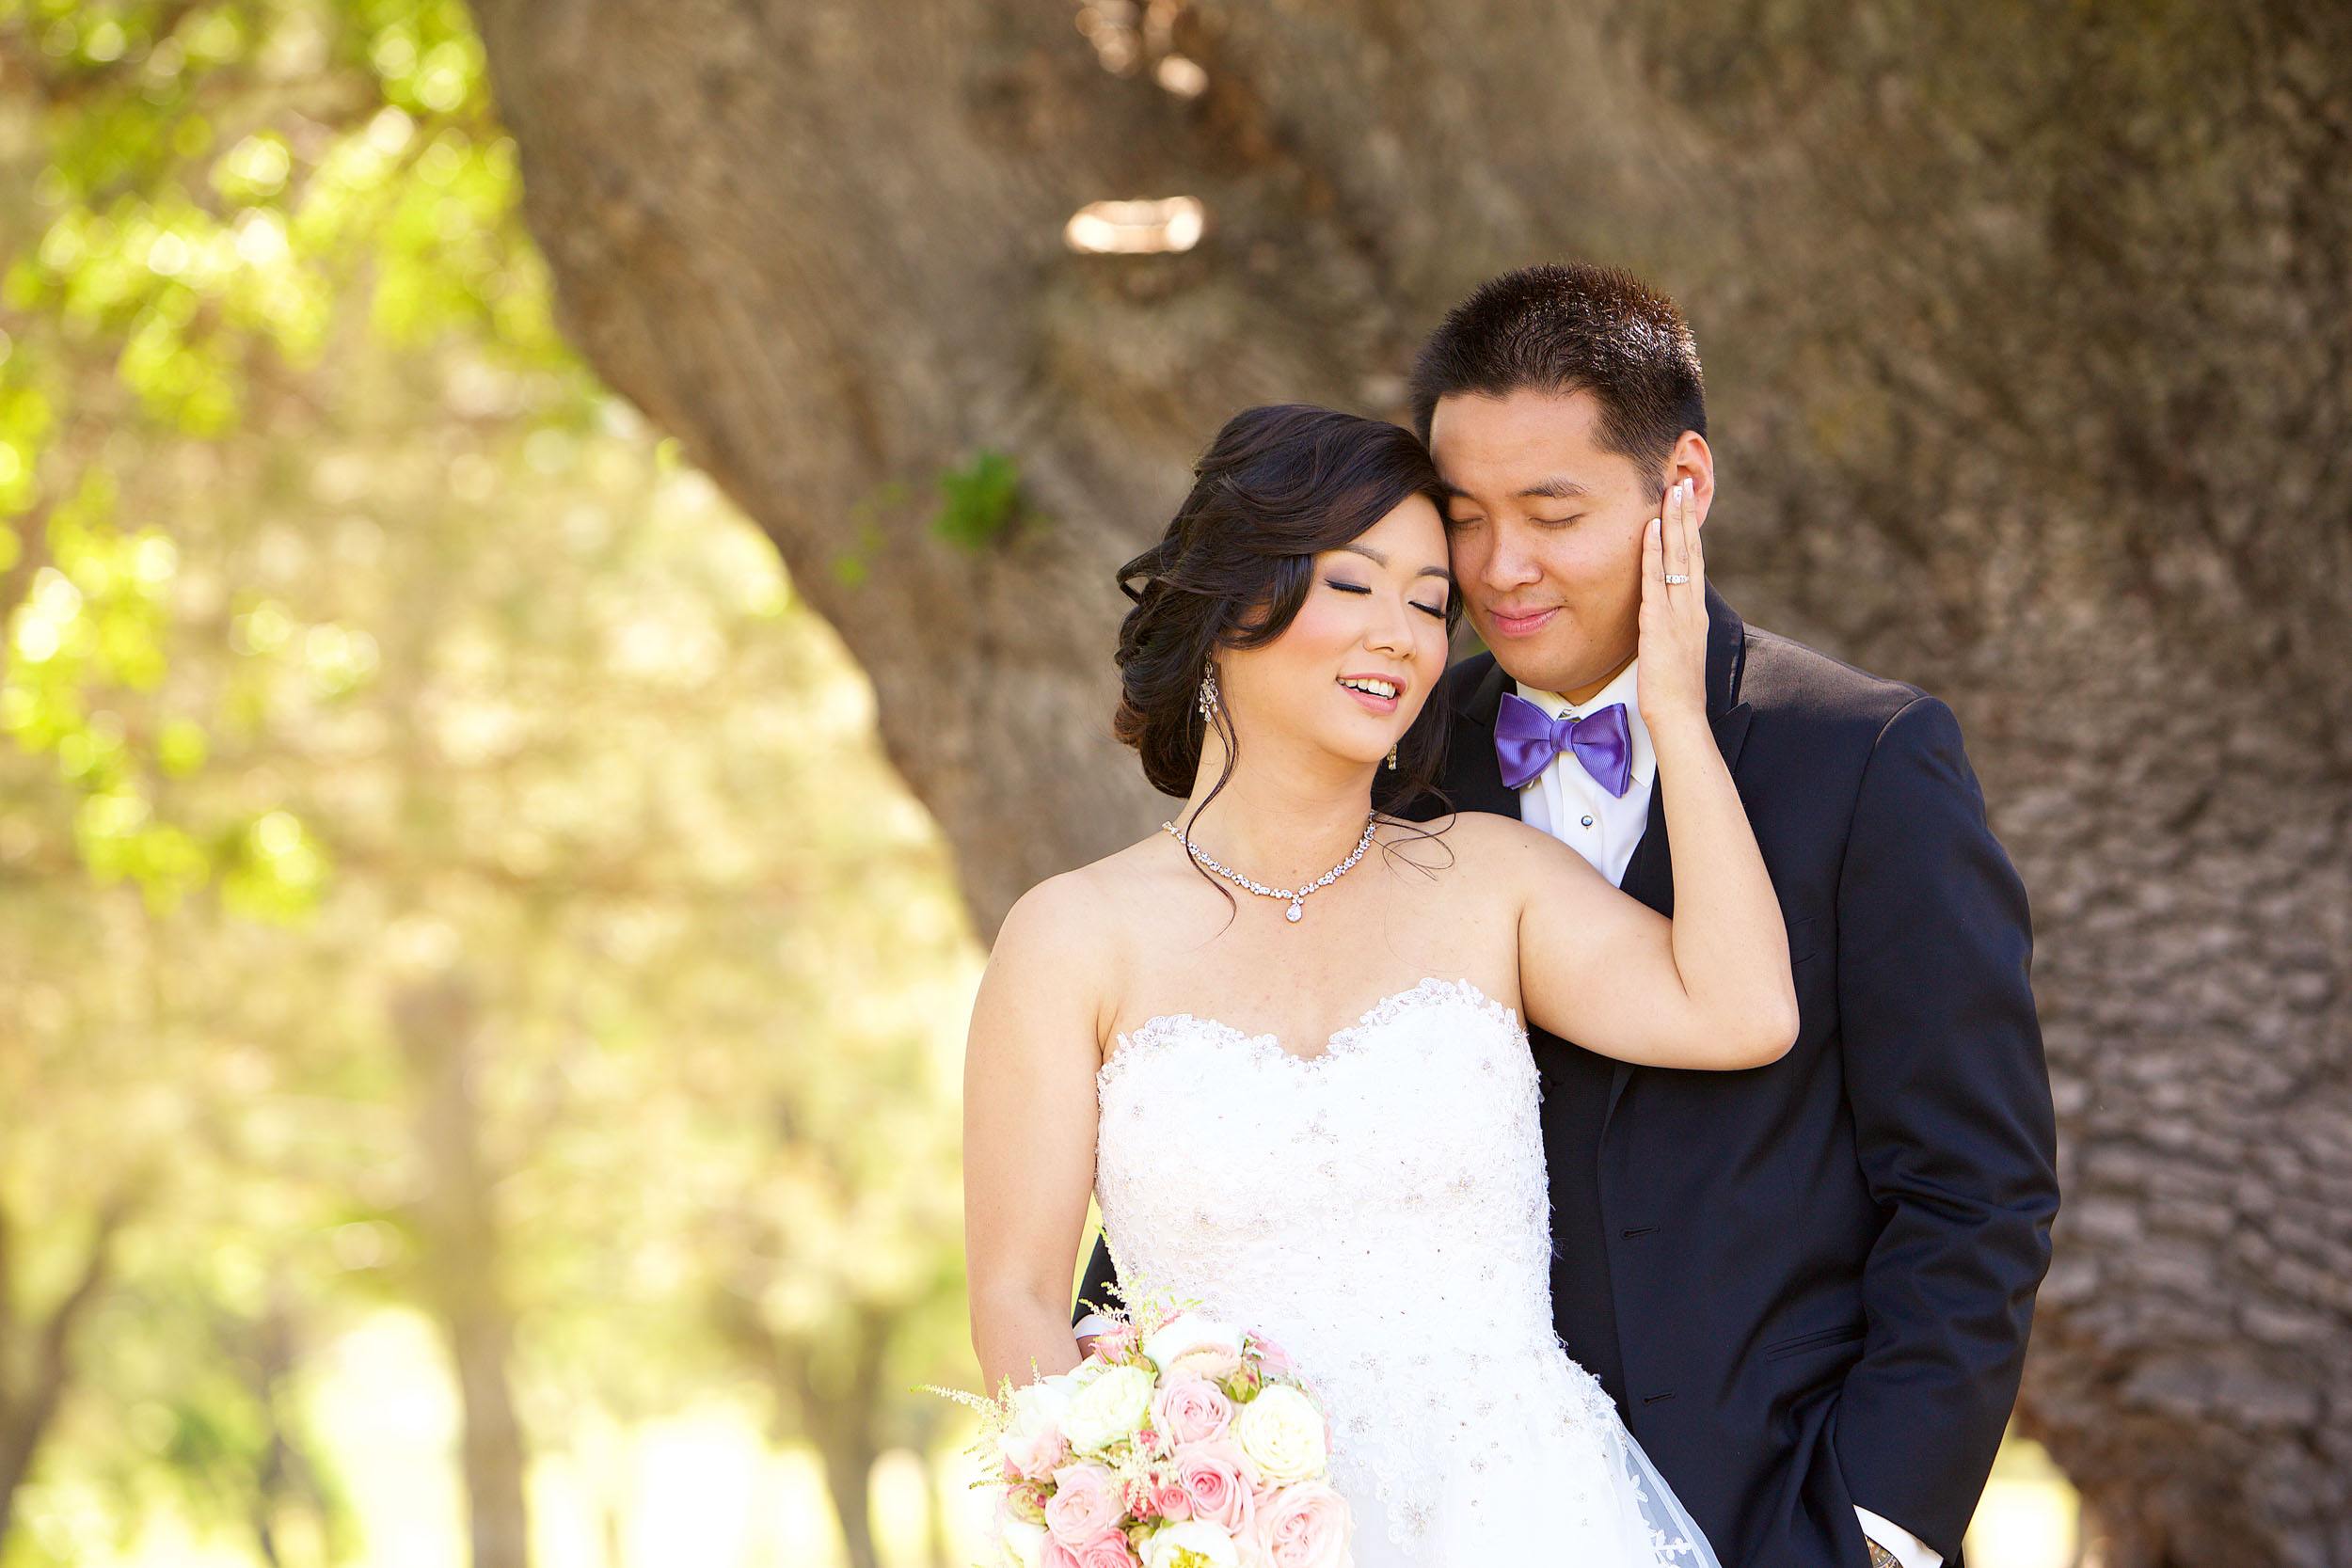 Jennydee Photography San Francisco wedding photography-136.jpg